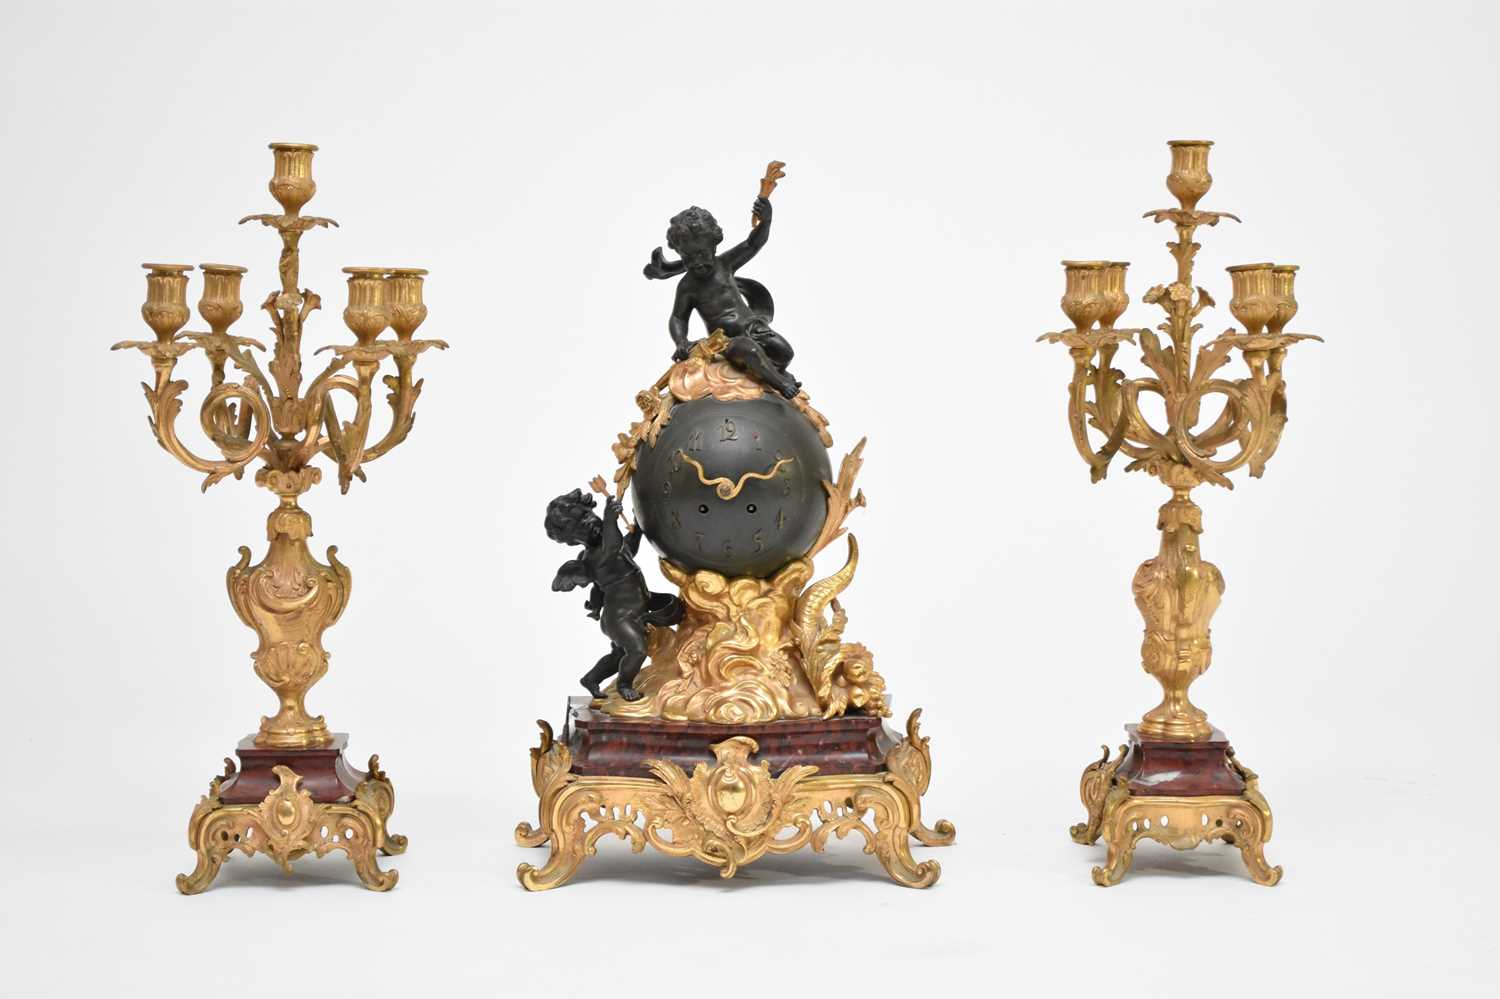 A late 19th/early 20th century, French, Rococo style, ormolu and marble mantel clock garniture